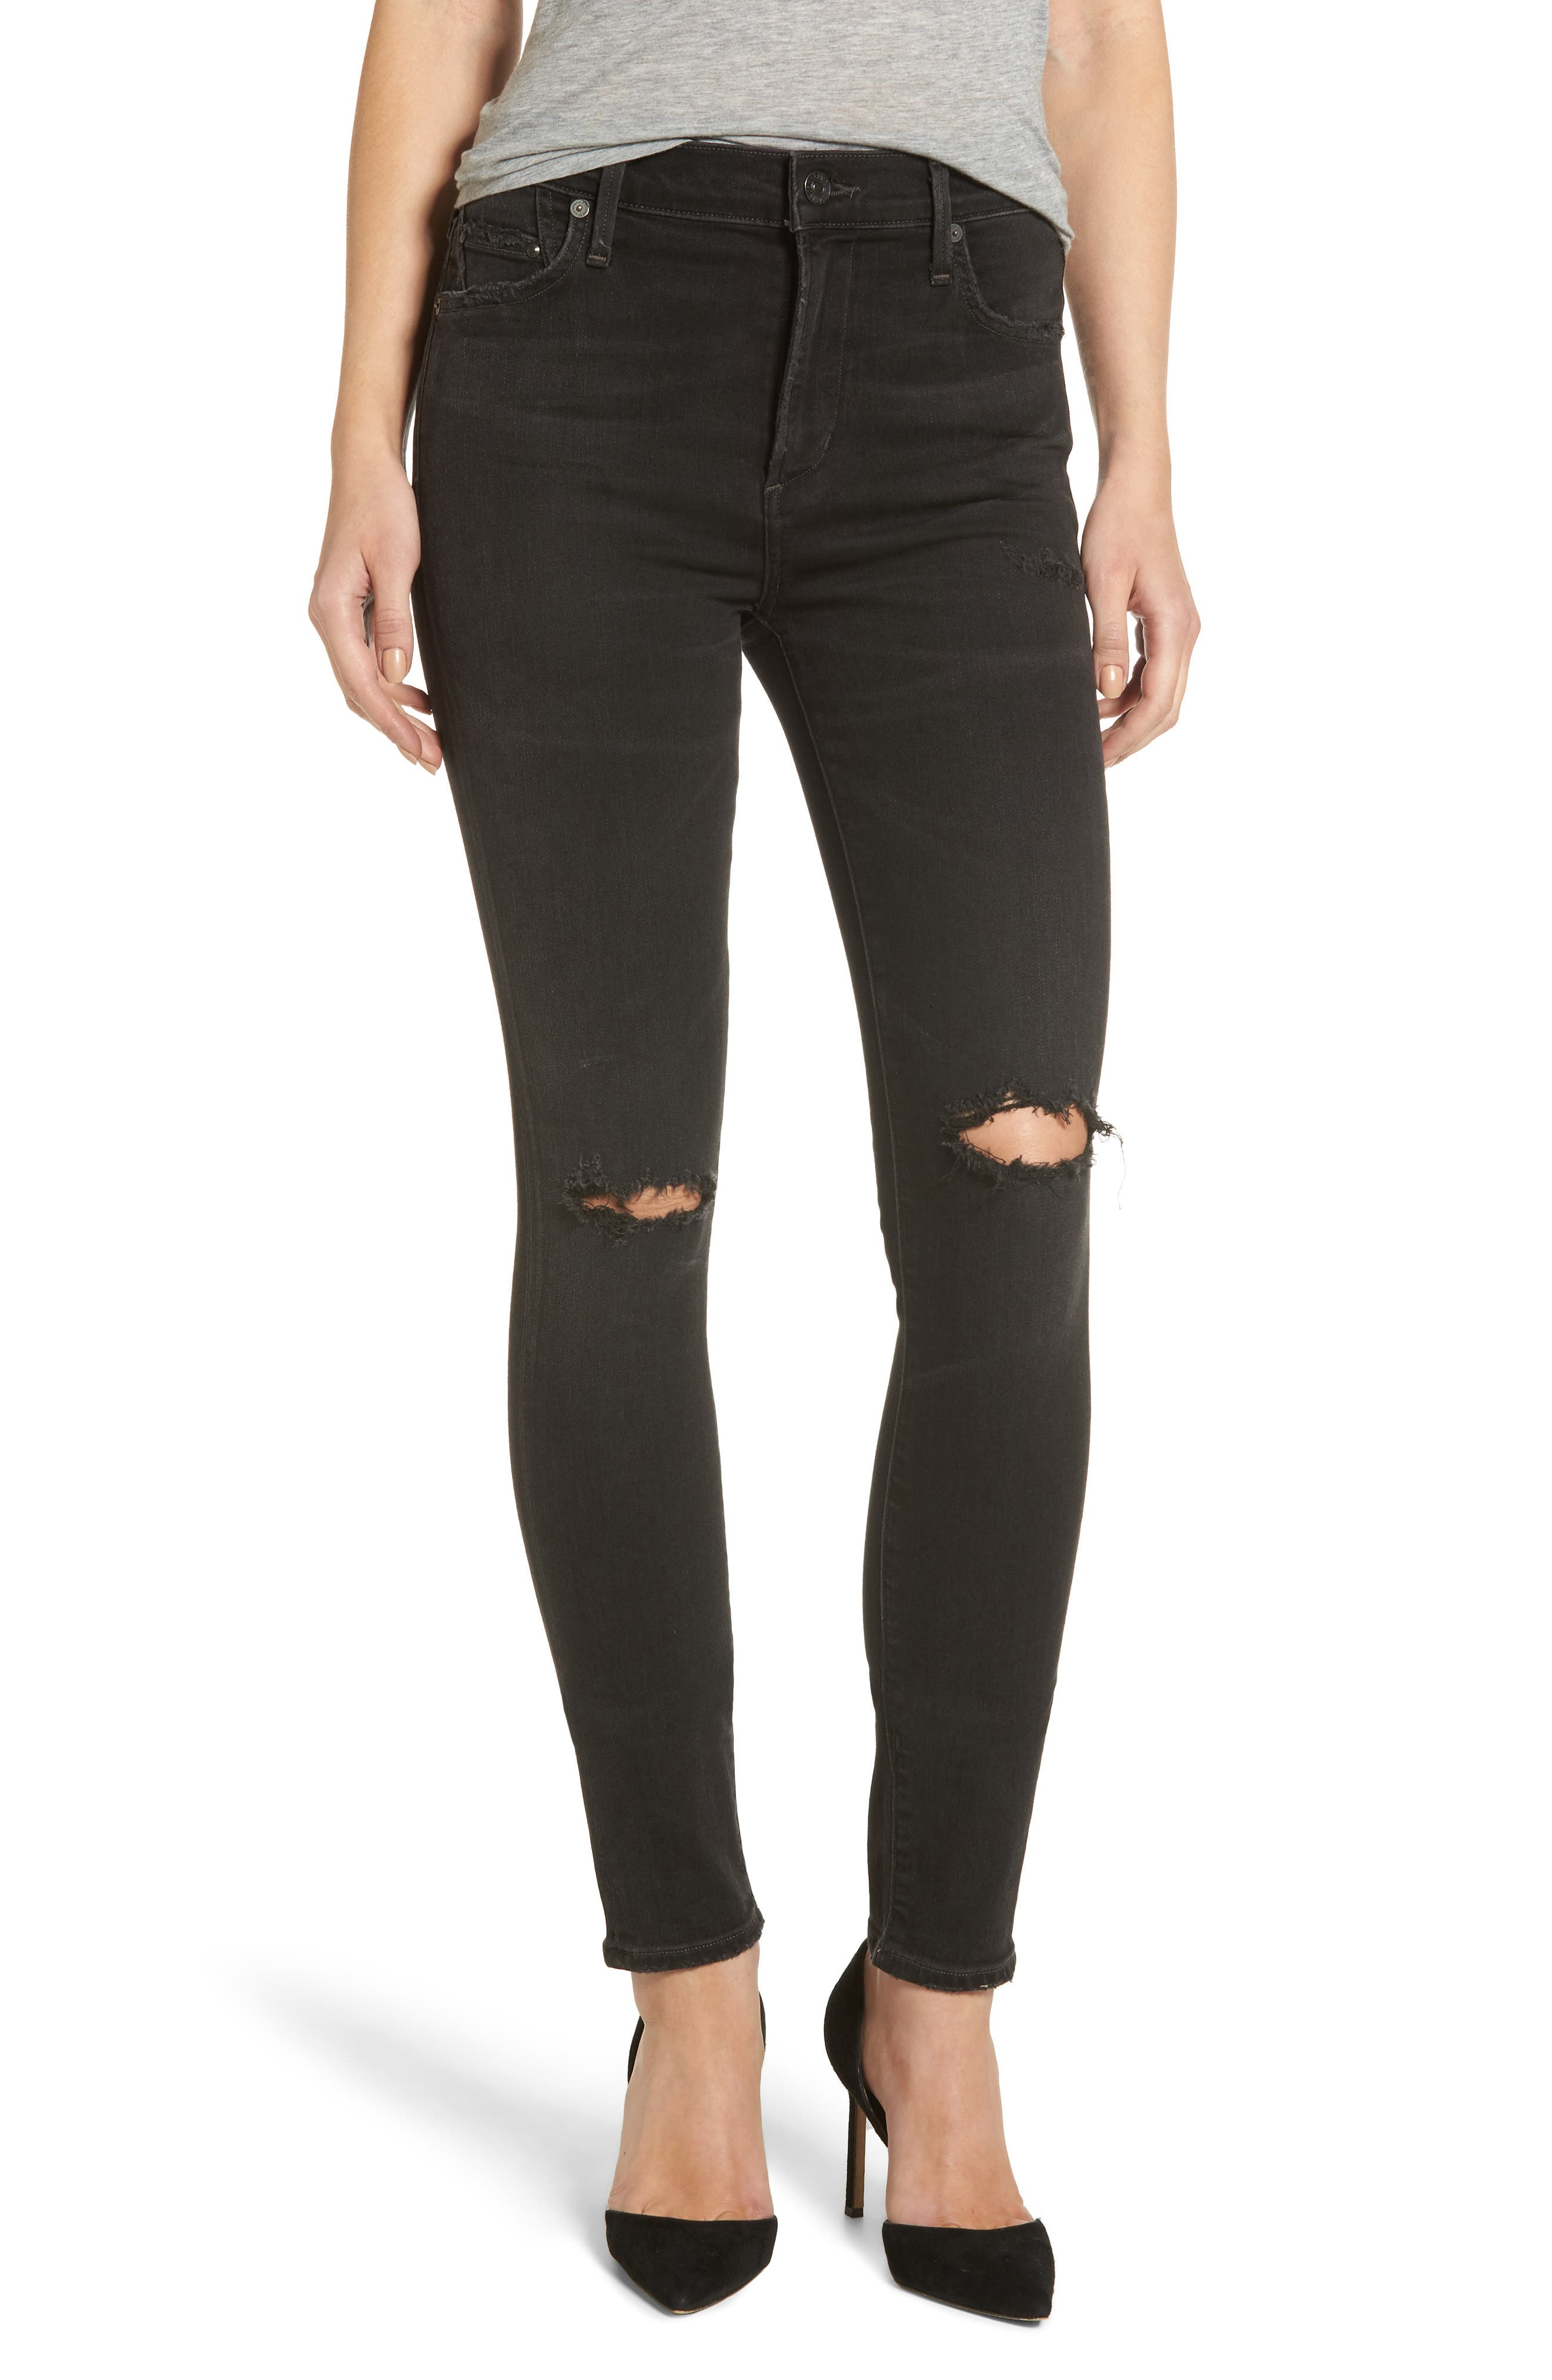 Rocket High Waist Skinny Jeans,                             Main thumbnail 1, color,                             Distressed Darkness